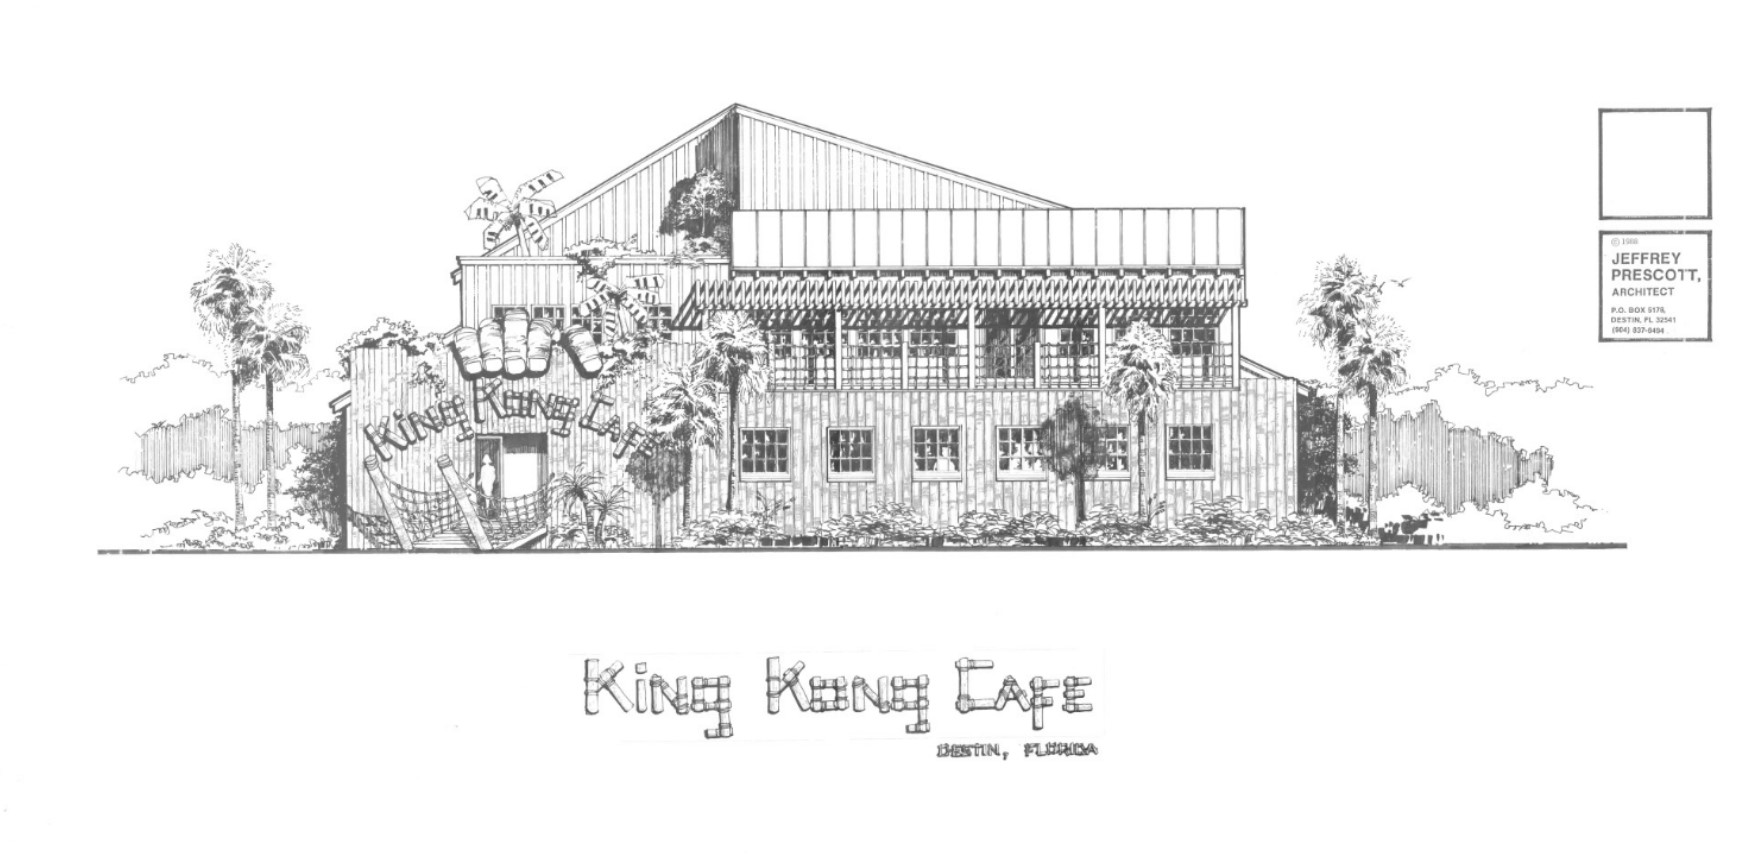 JEFFREY-PRESCOTT-ARCHITECT-KING-KONG-CAFE-CONCEPT-COMMERCIAL-RESTAURANT-1.jpg